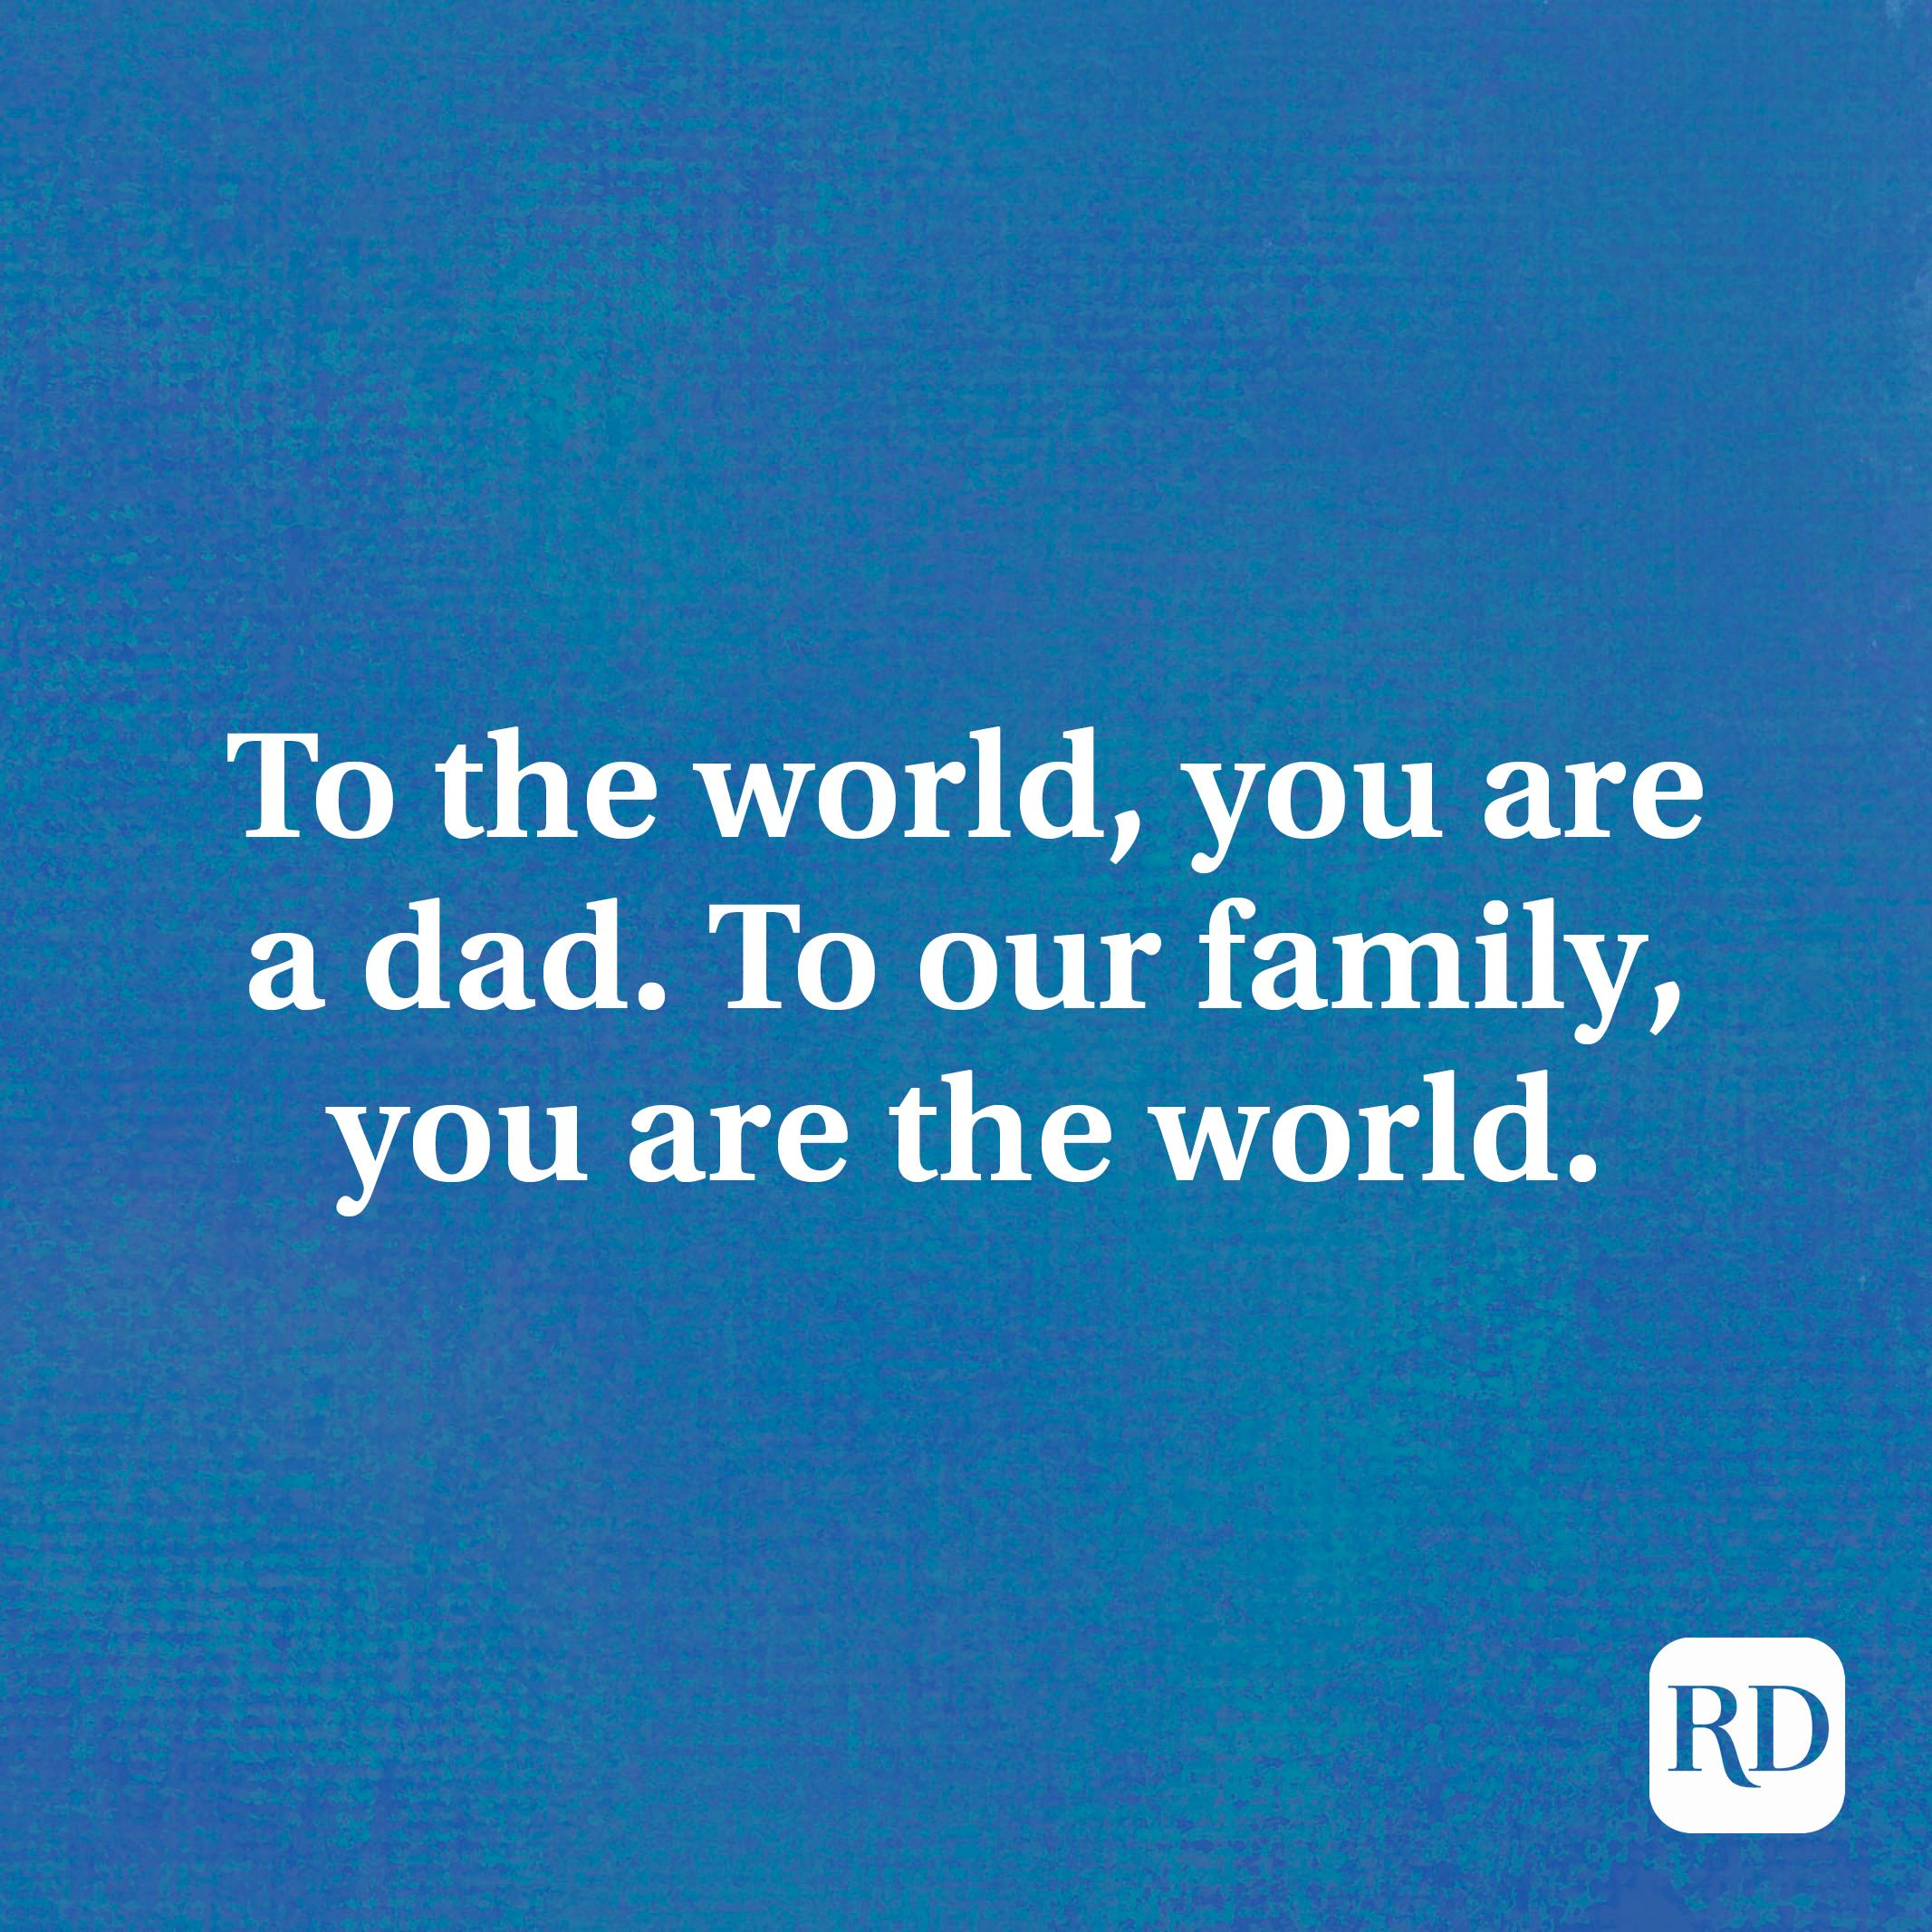 To the world, you are a dad. To our family, you are the world.